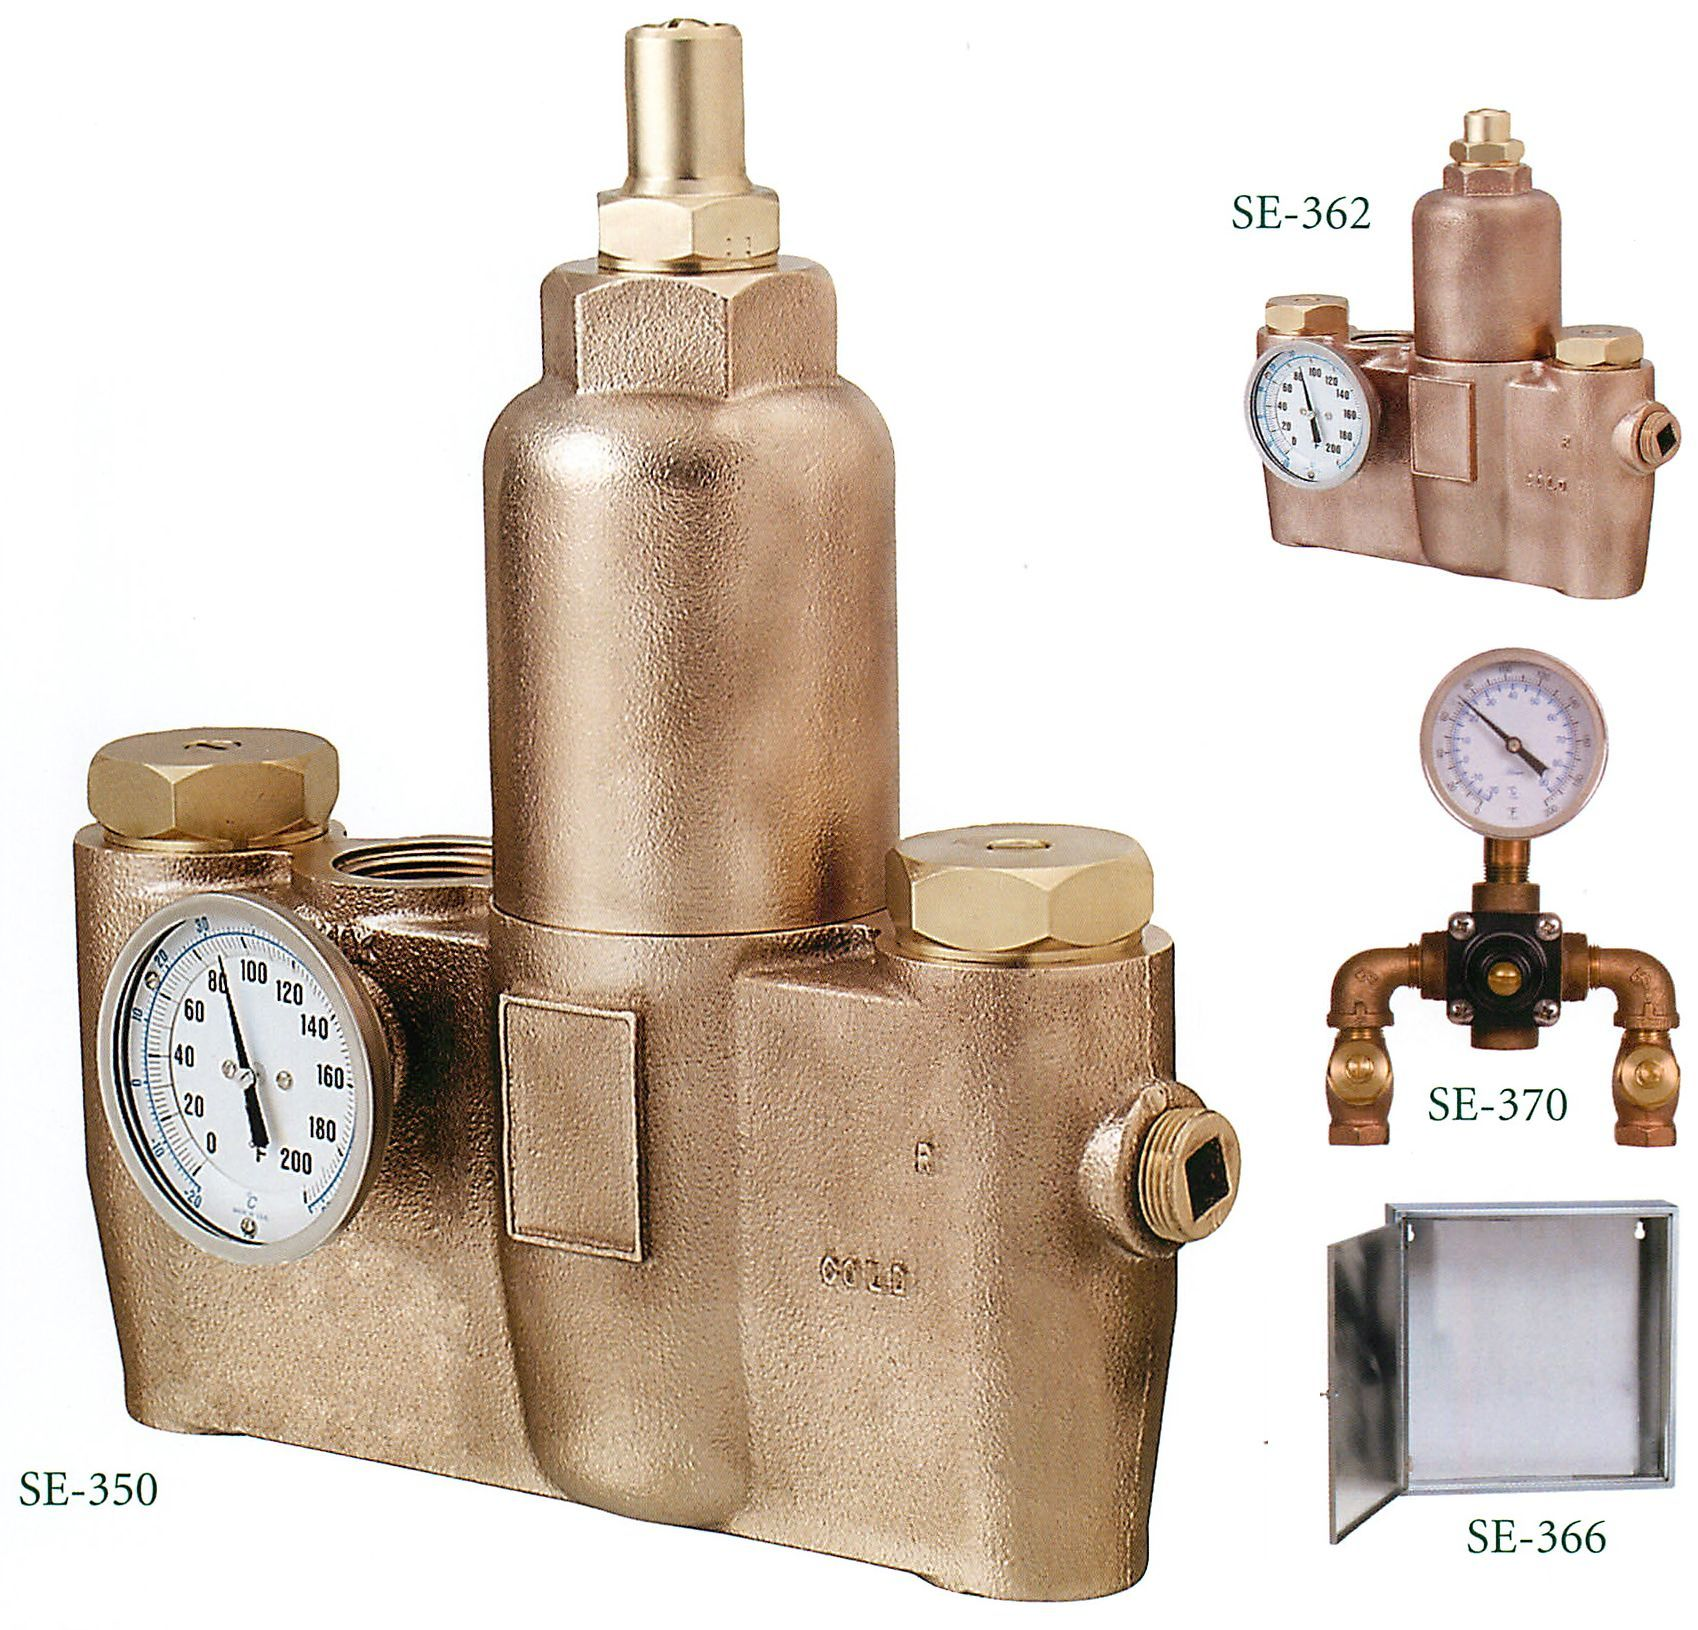 THERMOSTATIC MIXING VALVES | plumb | Pinterest | Water ...